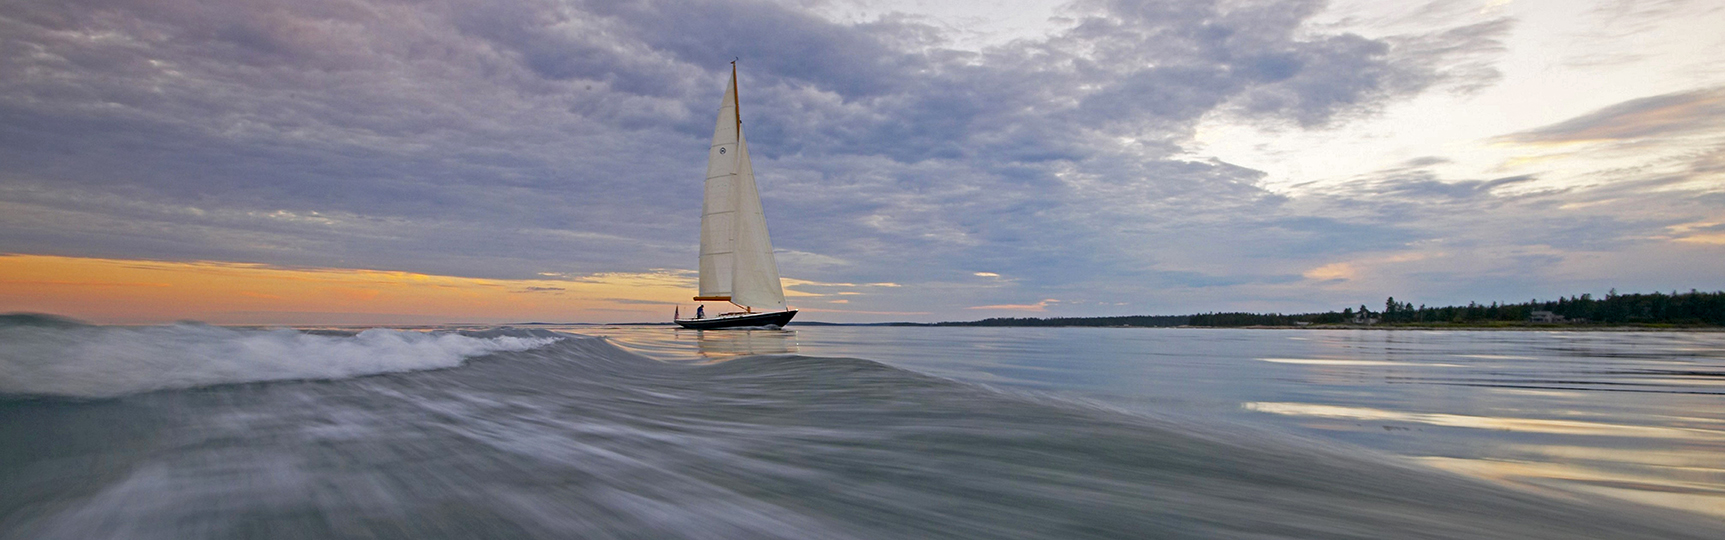 G318 - Hinckley Sailing in Maine